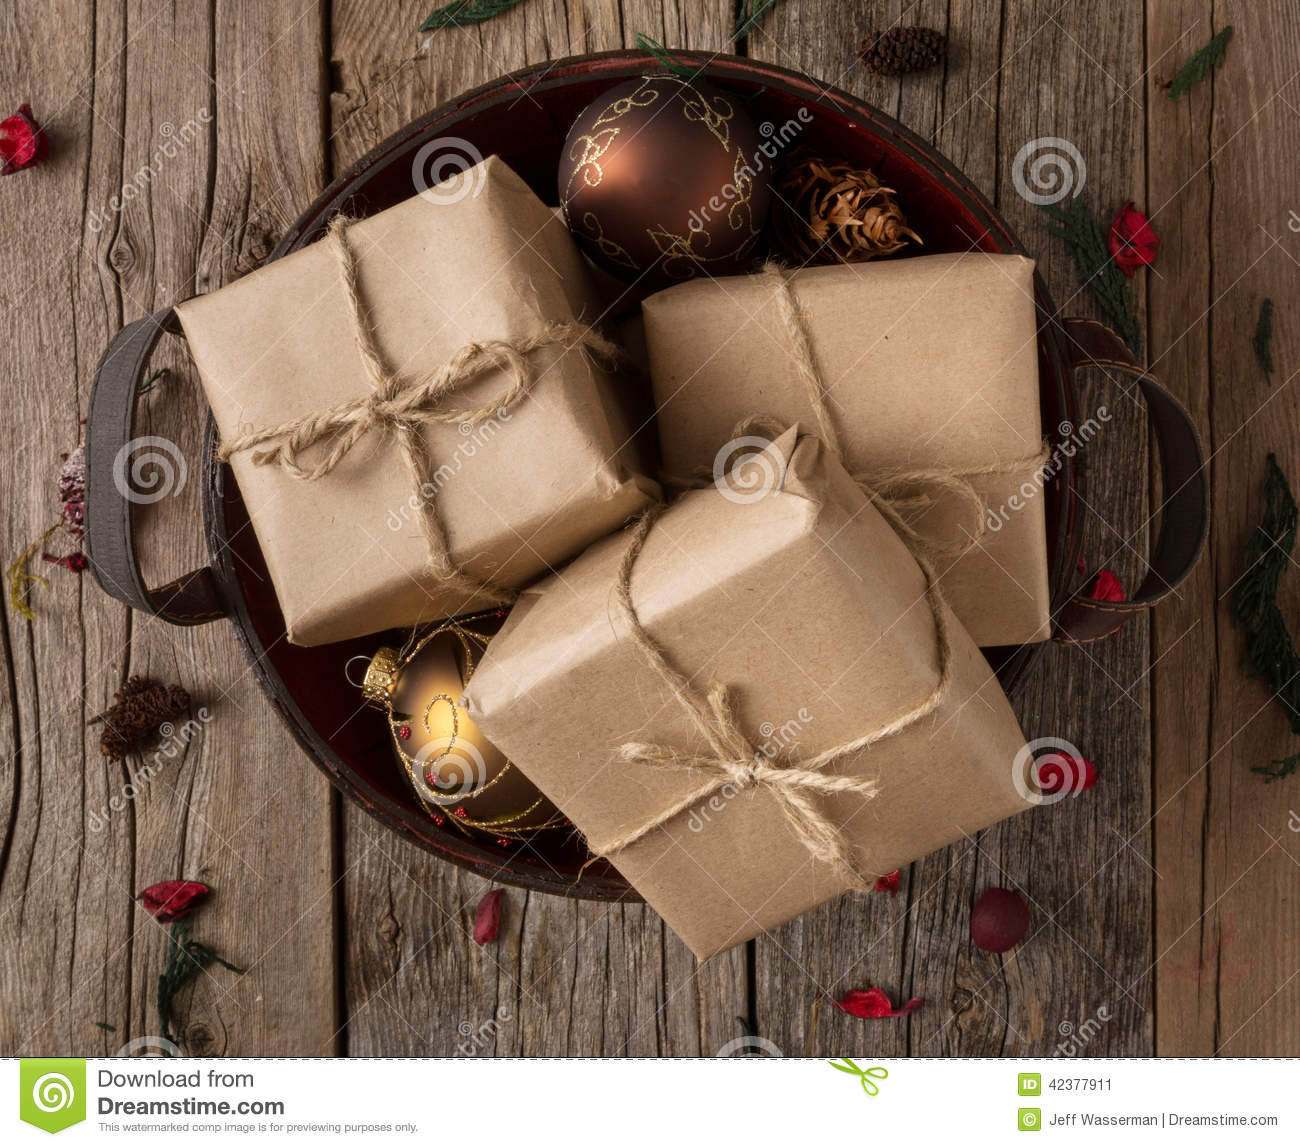 Rustic Wrapped Christmas Gifts Stock Image - Image of gifts, hand ...